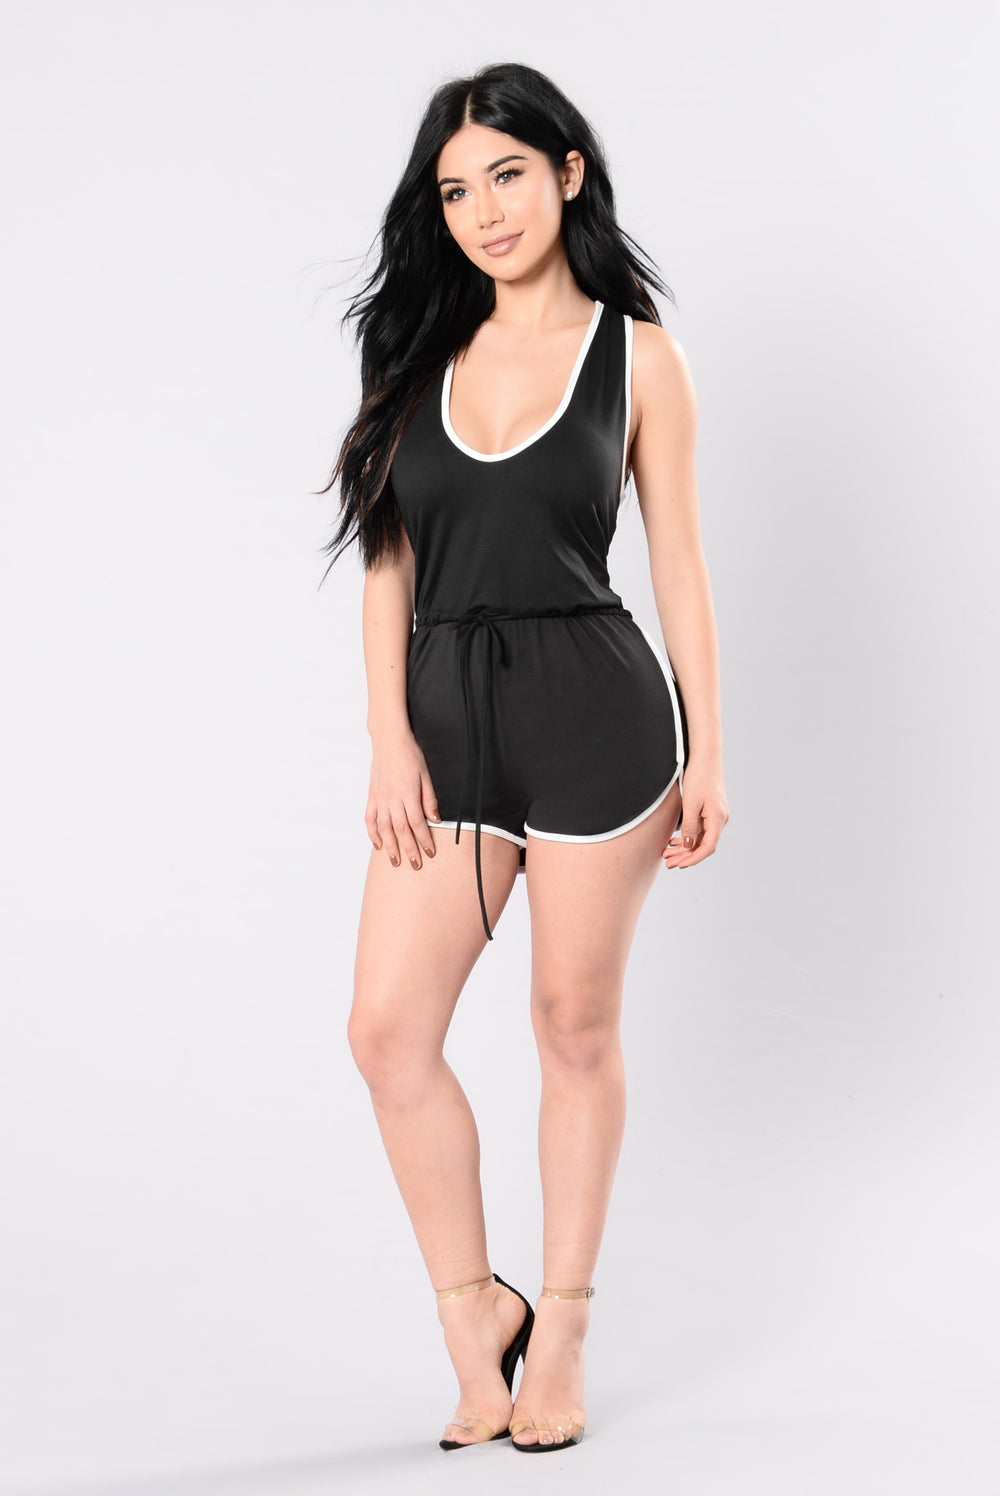 I Don't Fall Easily Romper - Black/White